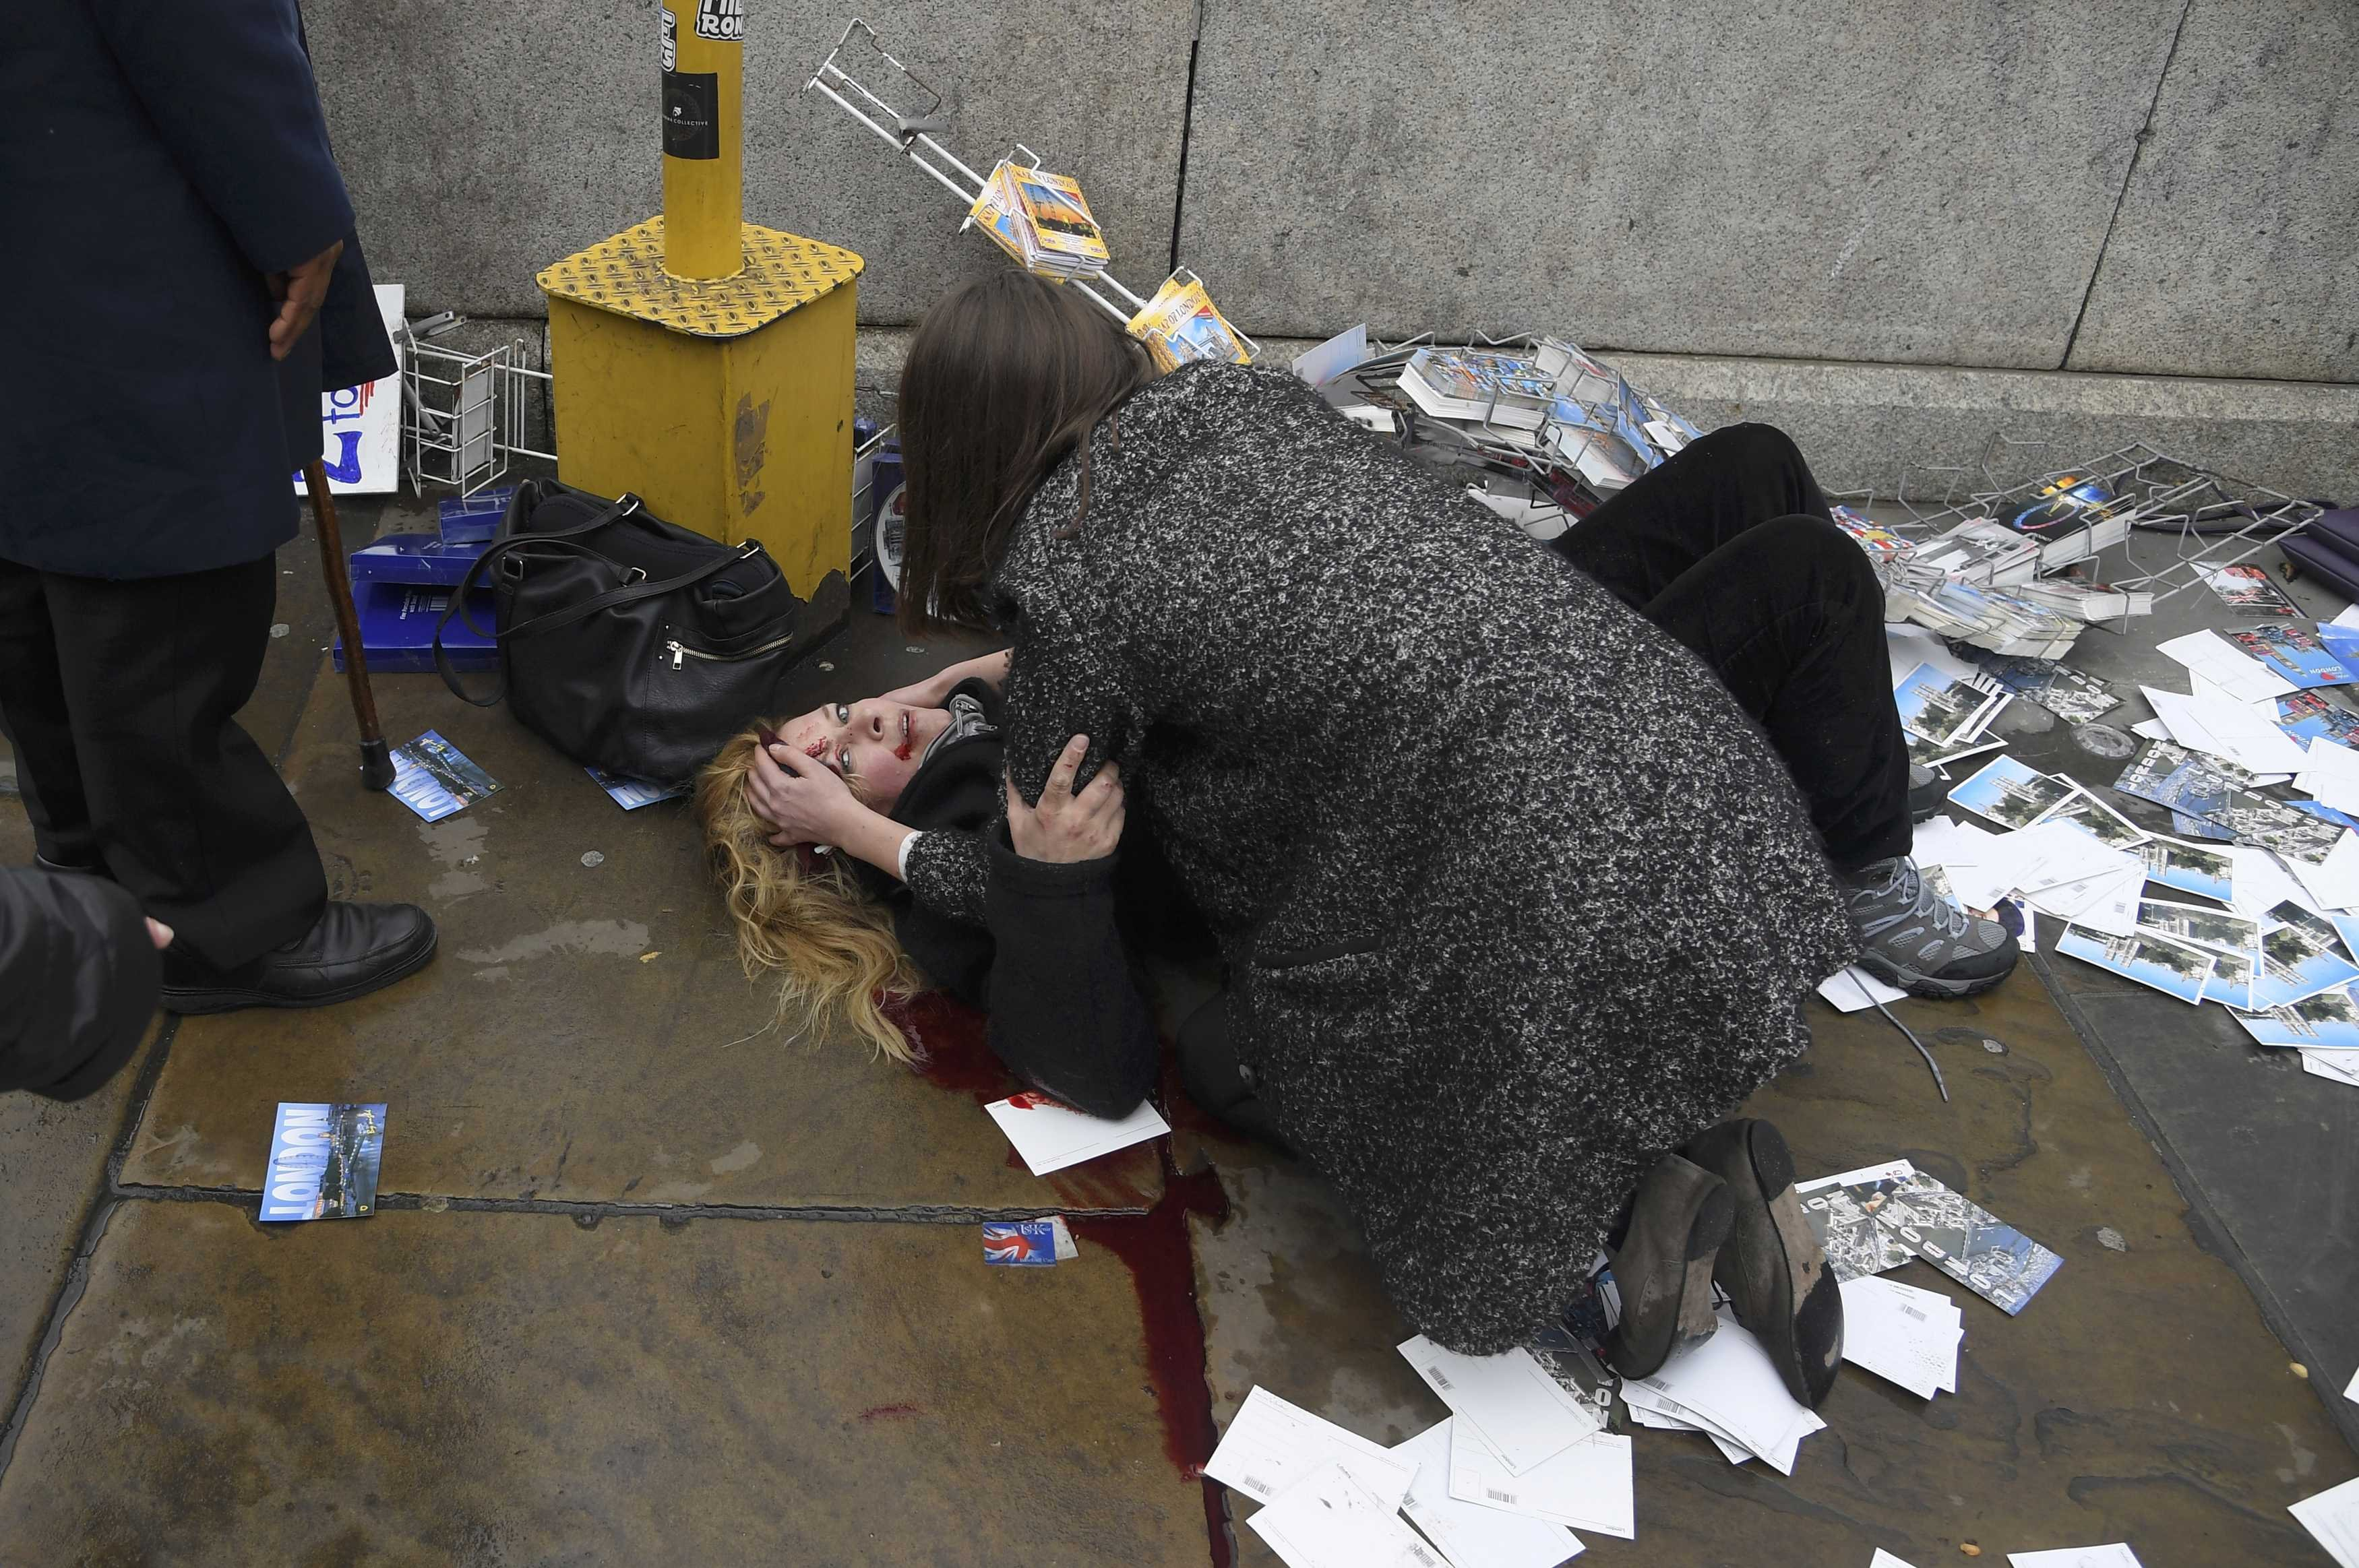 A woman lies injured after a shotting incident on Westminster Bridge, on March 22, 2017.